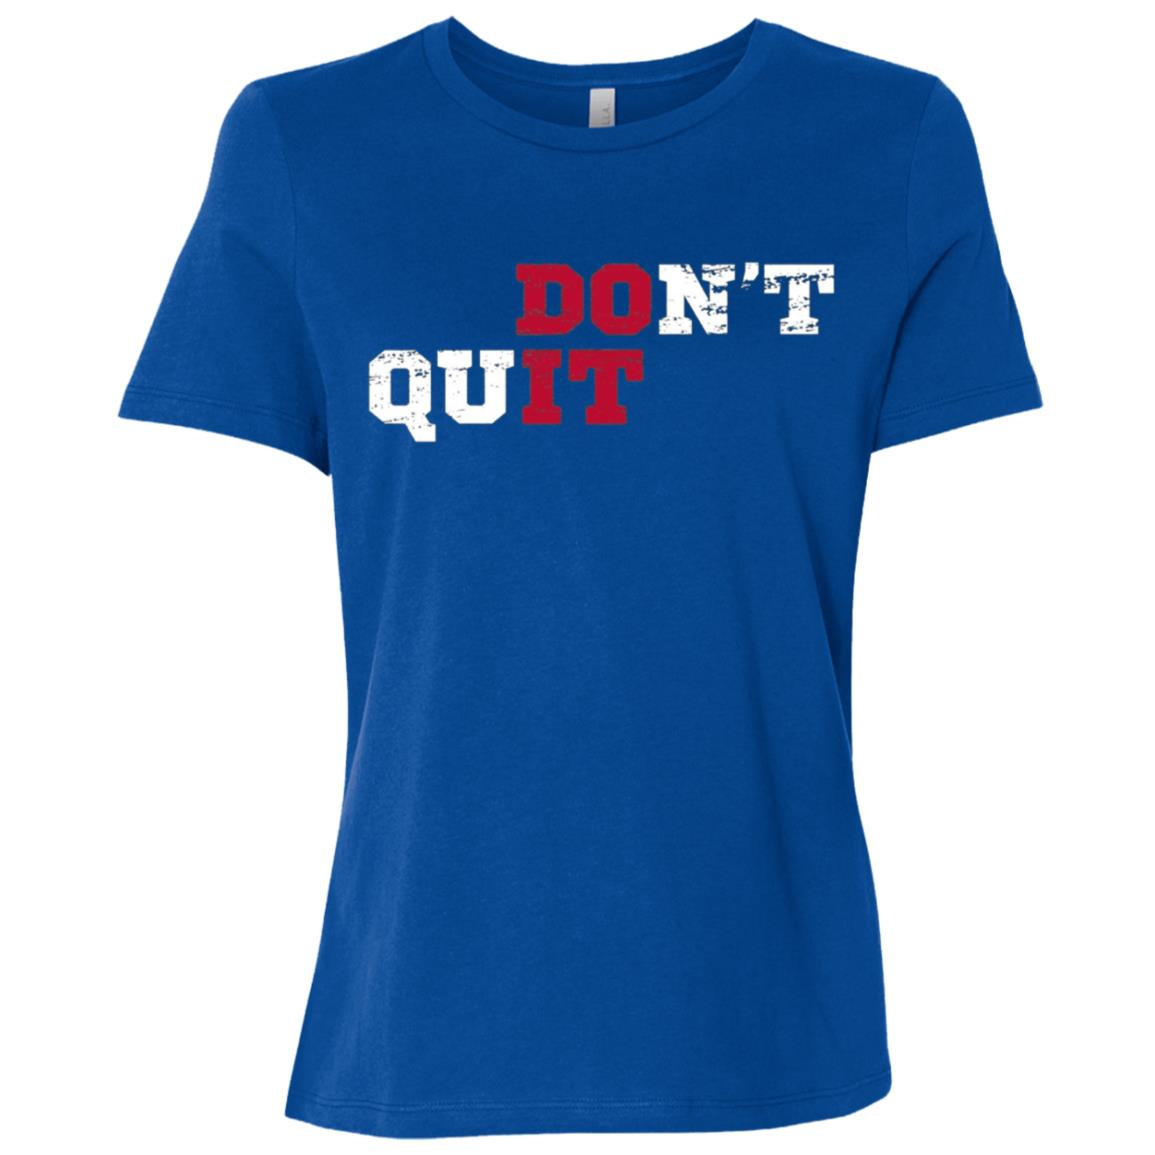 Don't Quit Do It Distressed Vintage Gym Running Women Short Sleeve T-Shirt